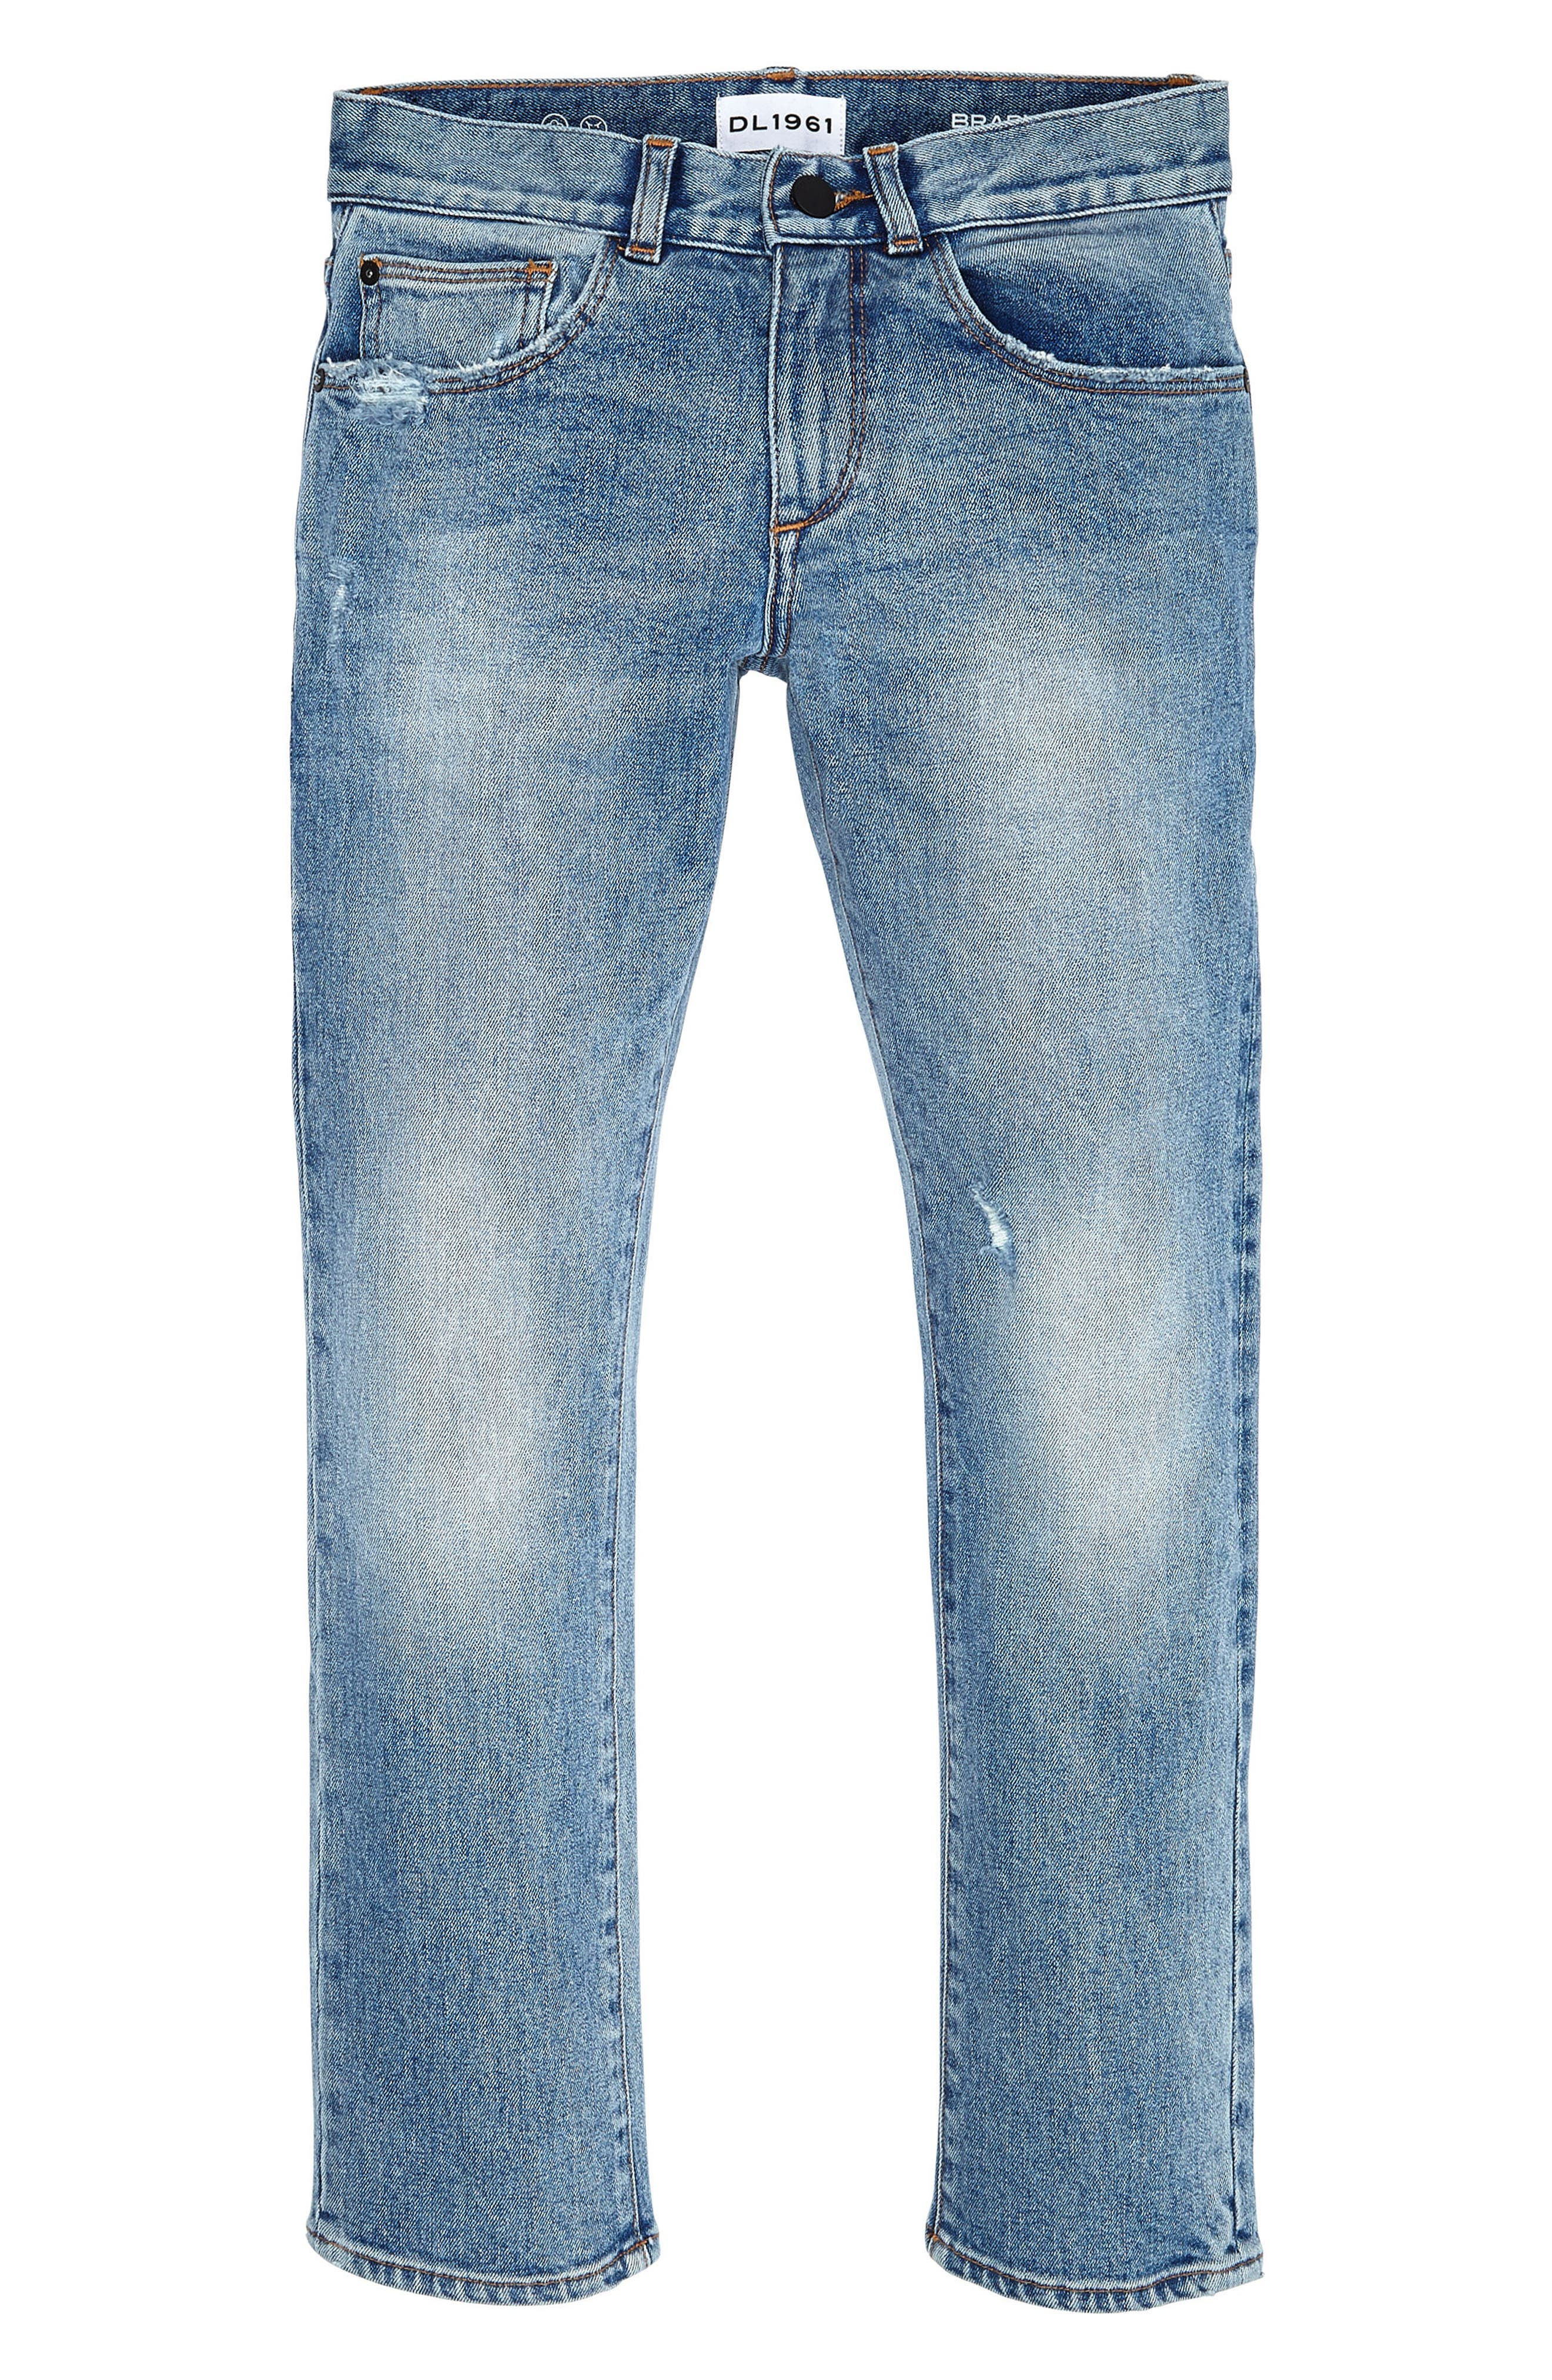 Brady Slim Fit Jeans,                             Main thumbnail 1, color,                             430